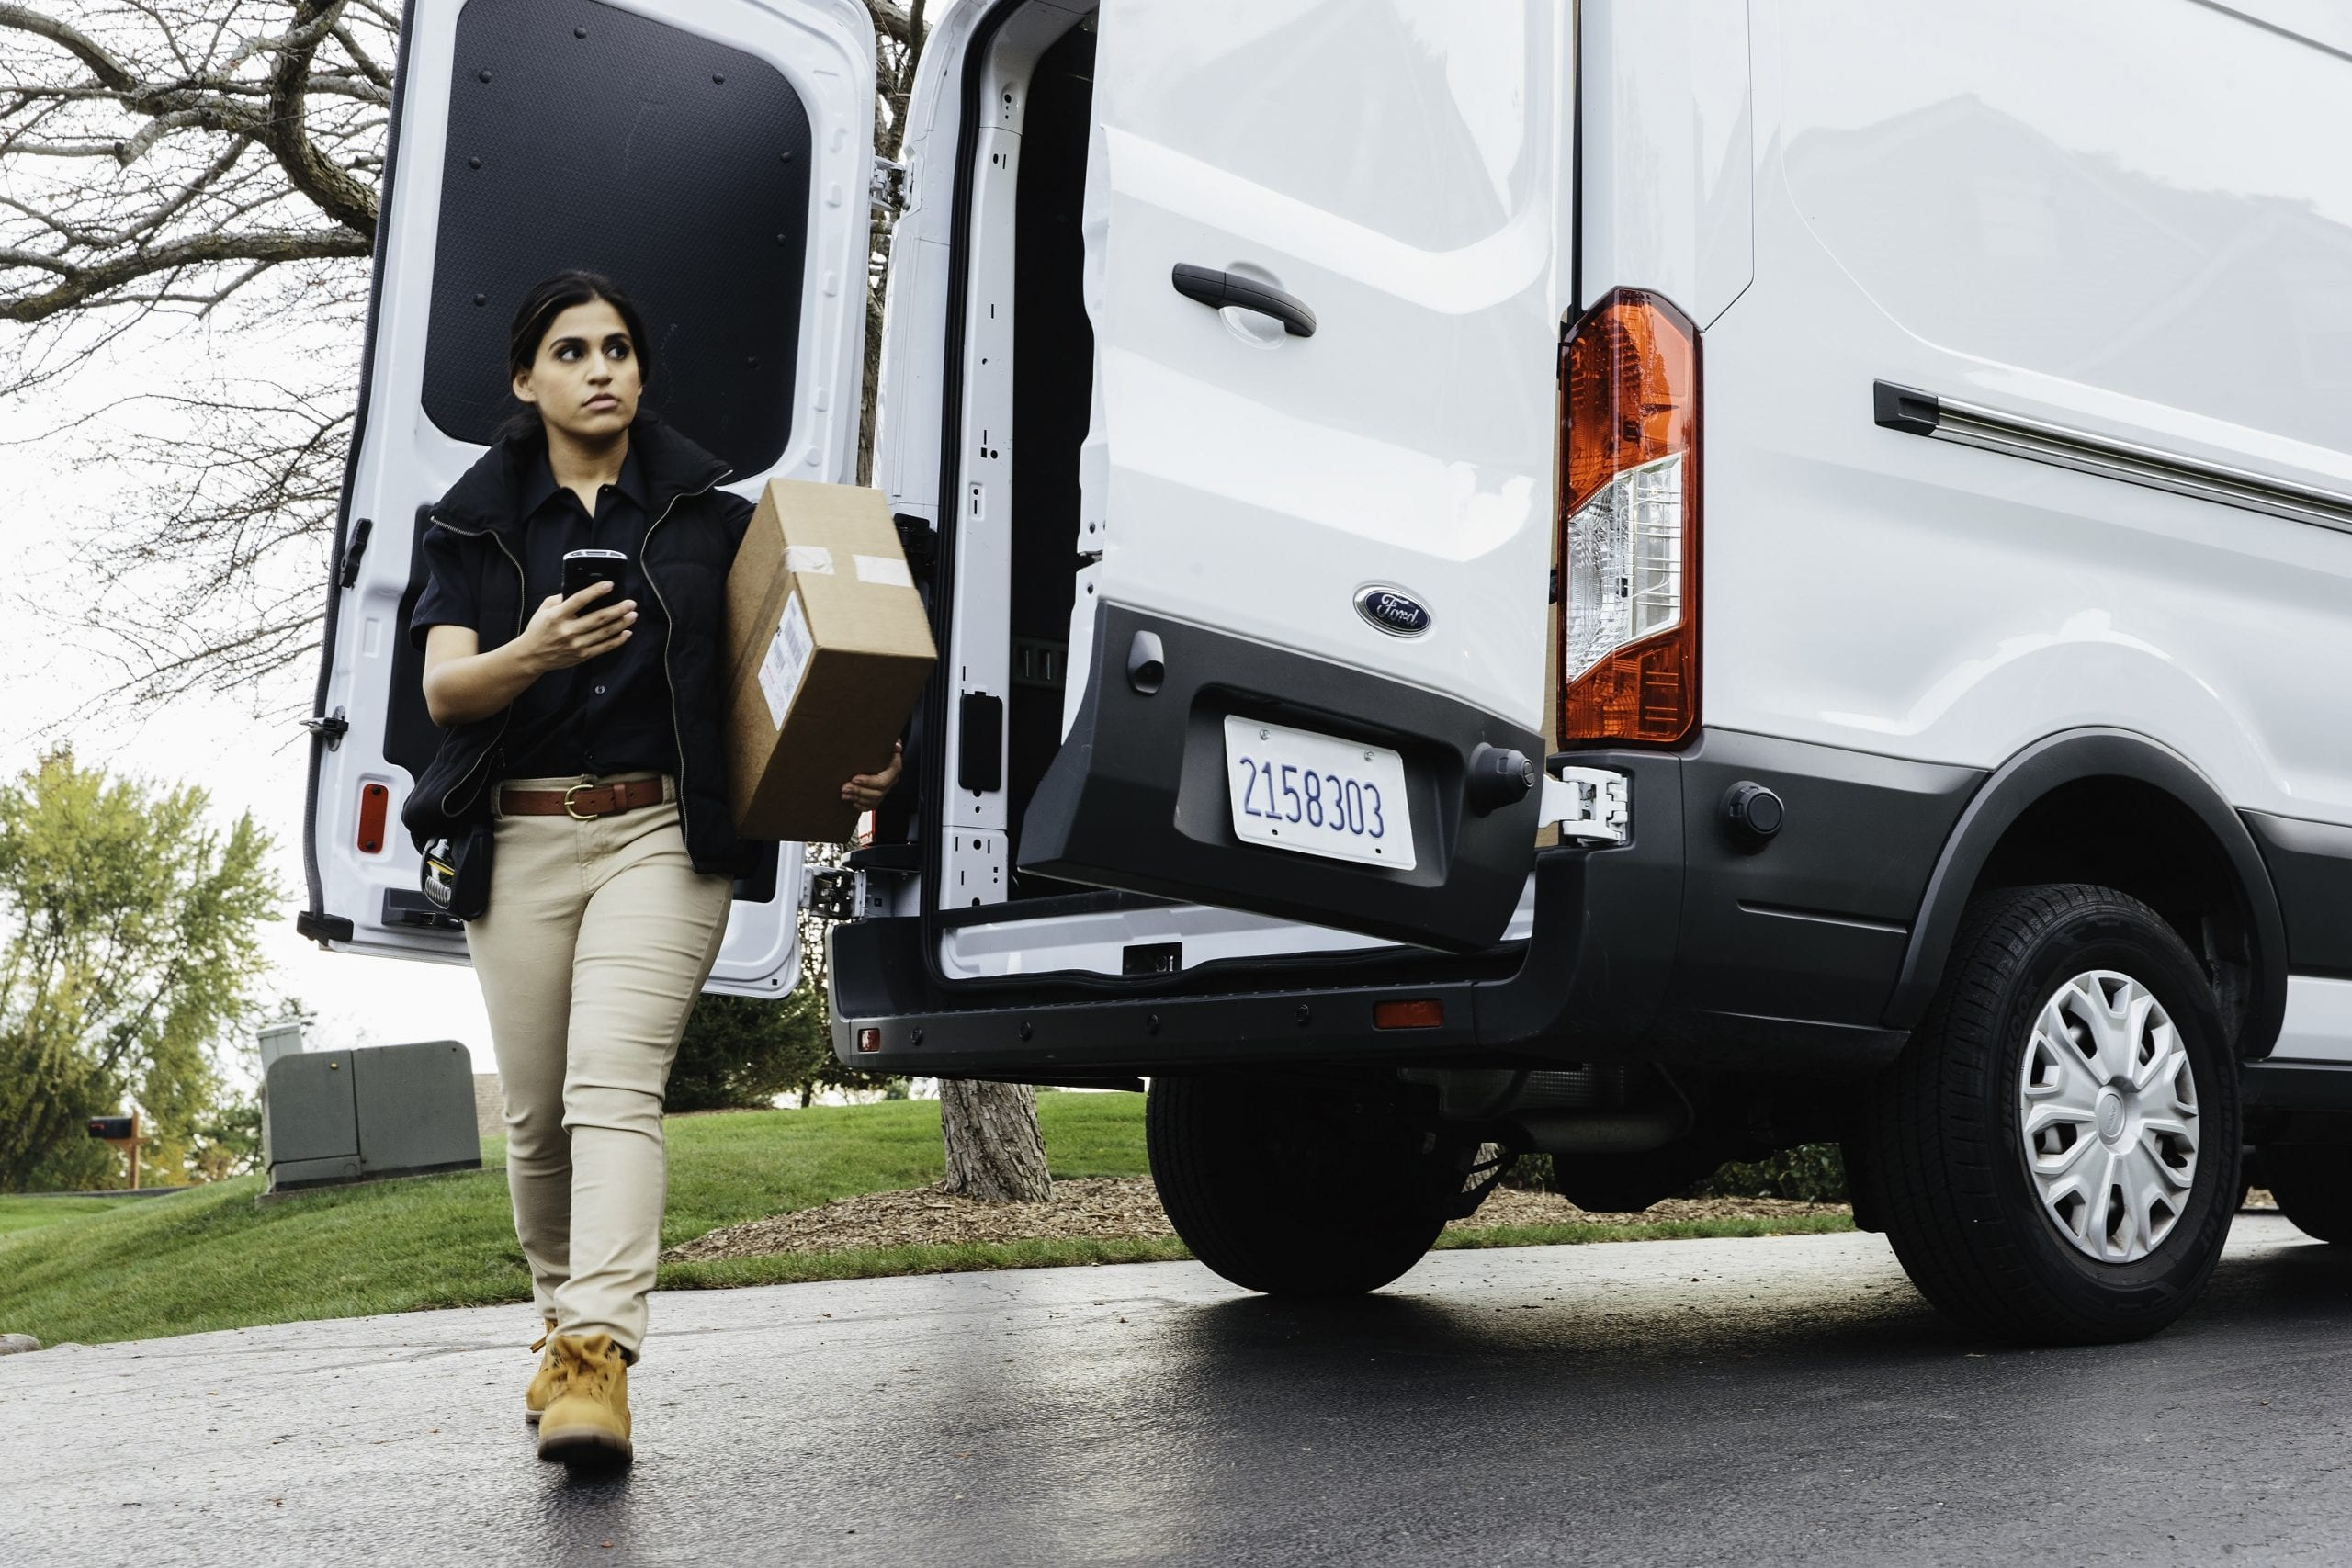 Lady delivering parcel carrying a mobile device with van in background